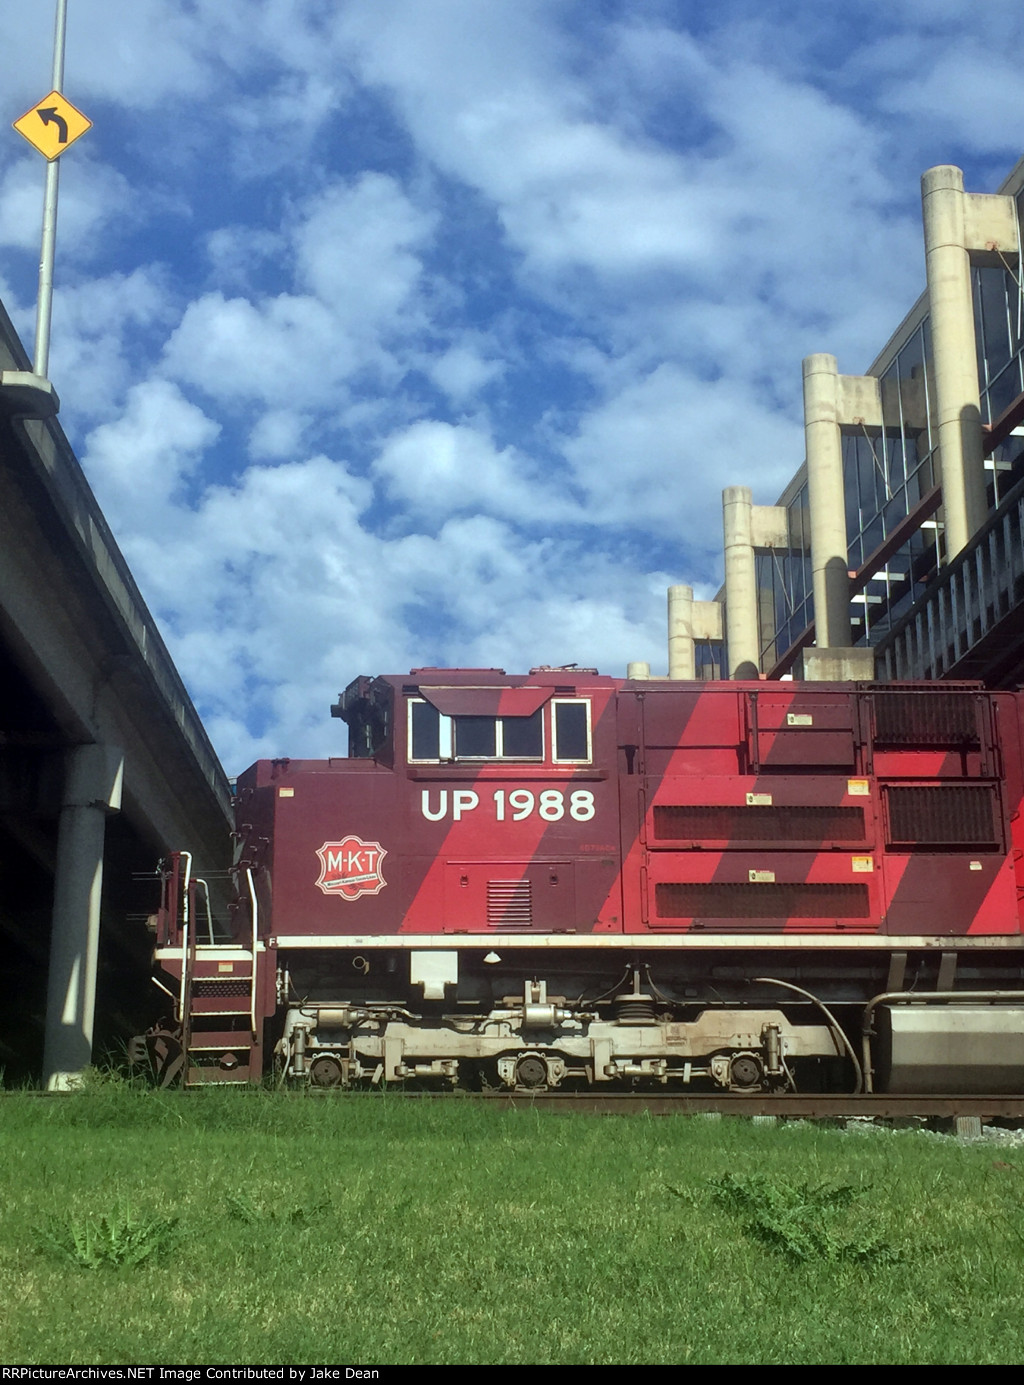 UP 1988 Katy (SD 70ACe)